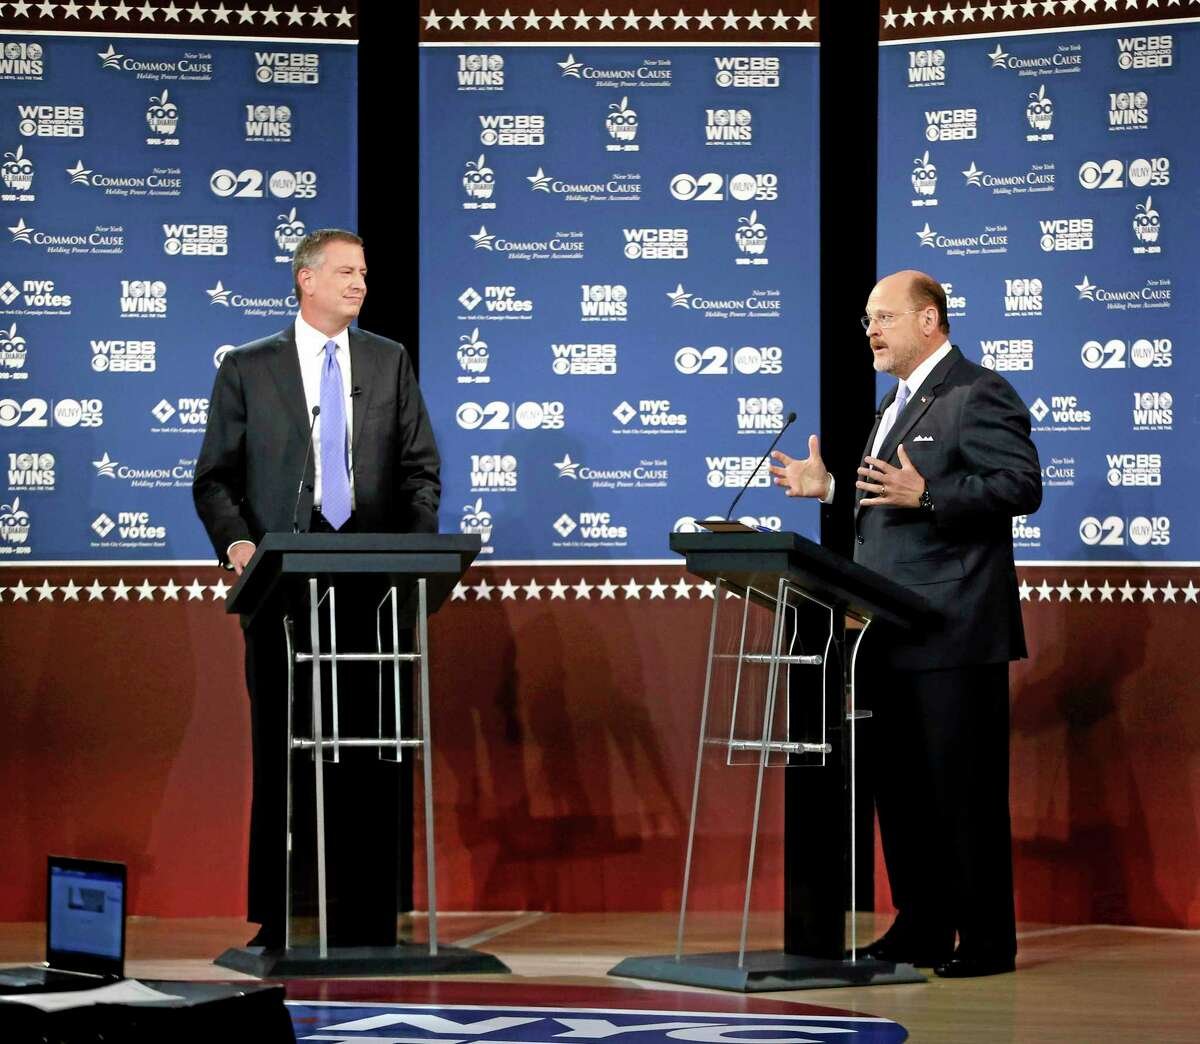 New York City Democratic mayoral candidate Bill de Blasio, left, listens as Republican candidate Joe Lhota makes a point during as they participate in the second of three debates prior to the Nov. 5 general election, Tuesday, Oct. 22, 2013, in New York. (AP Photo/ Kathy Willens, Pool)